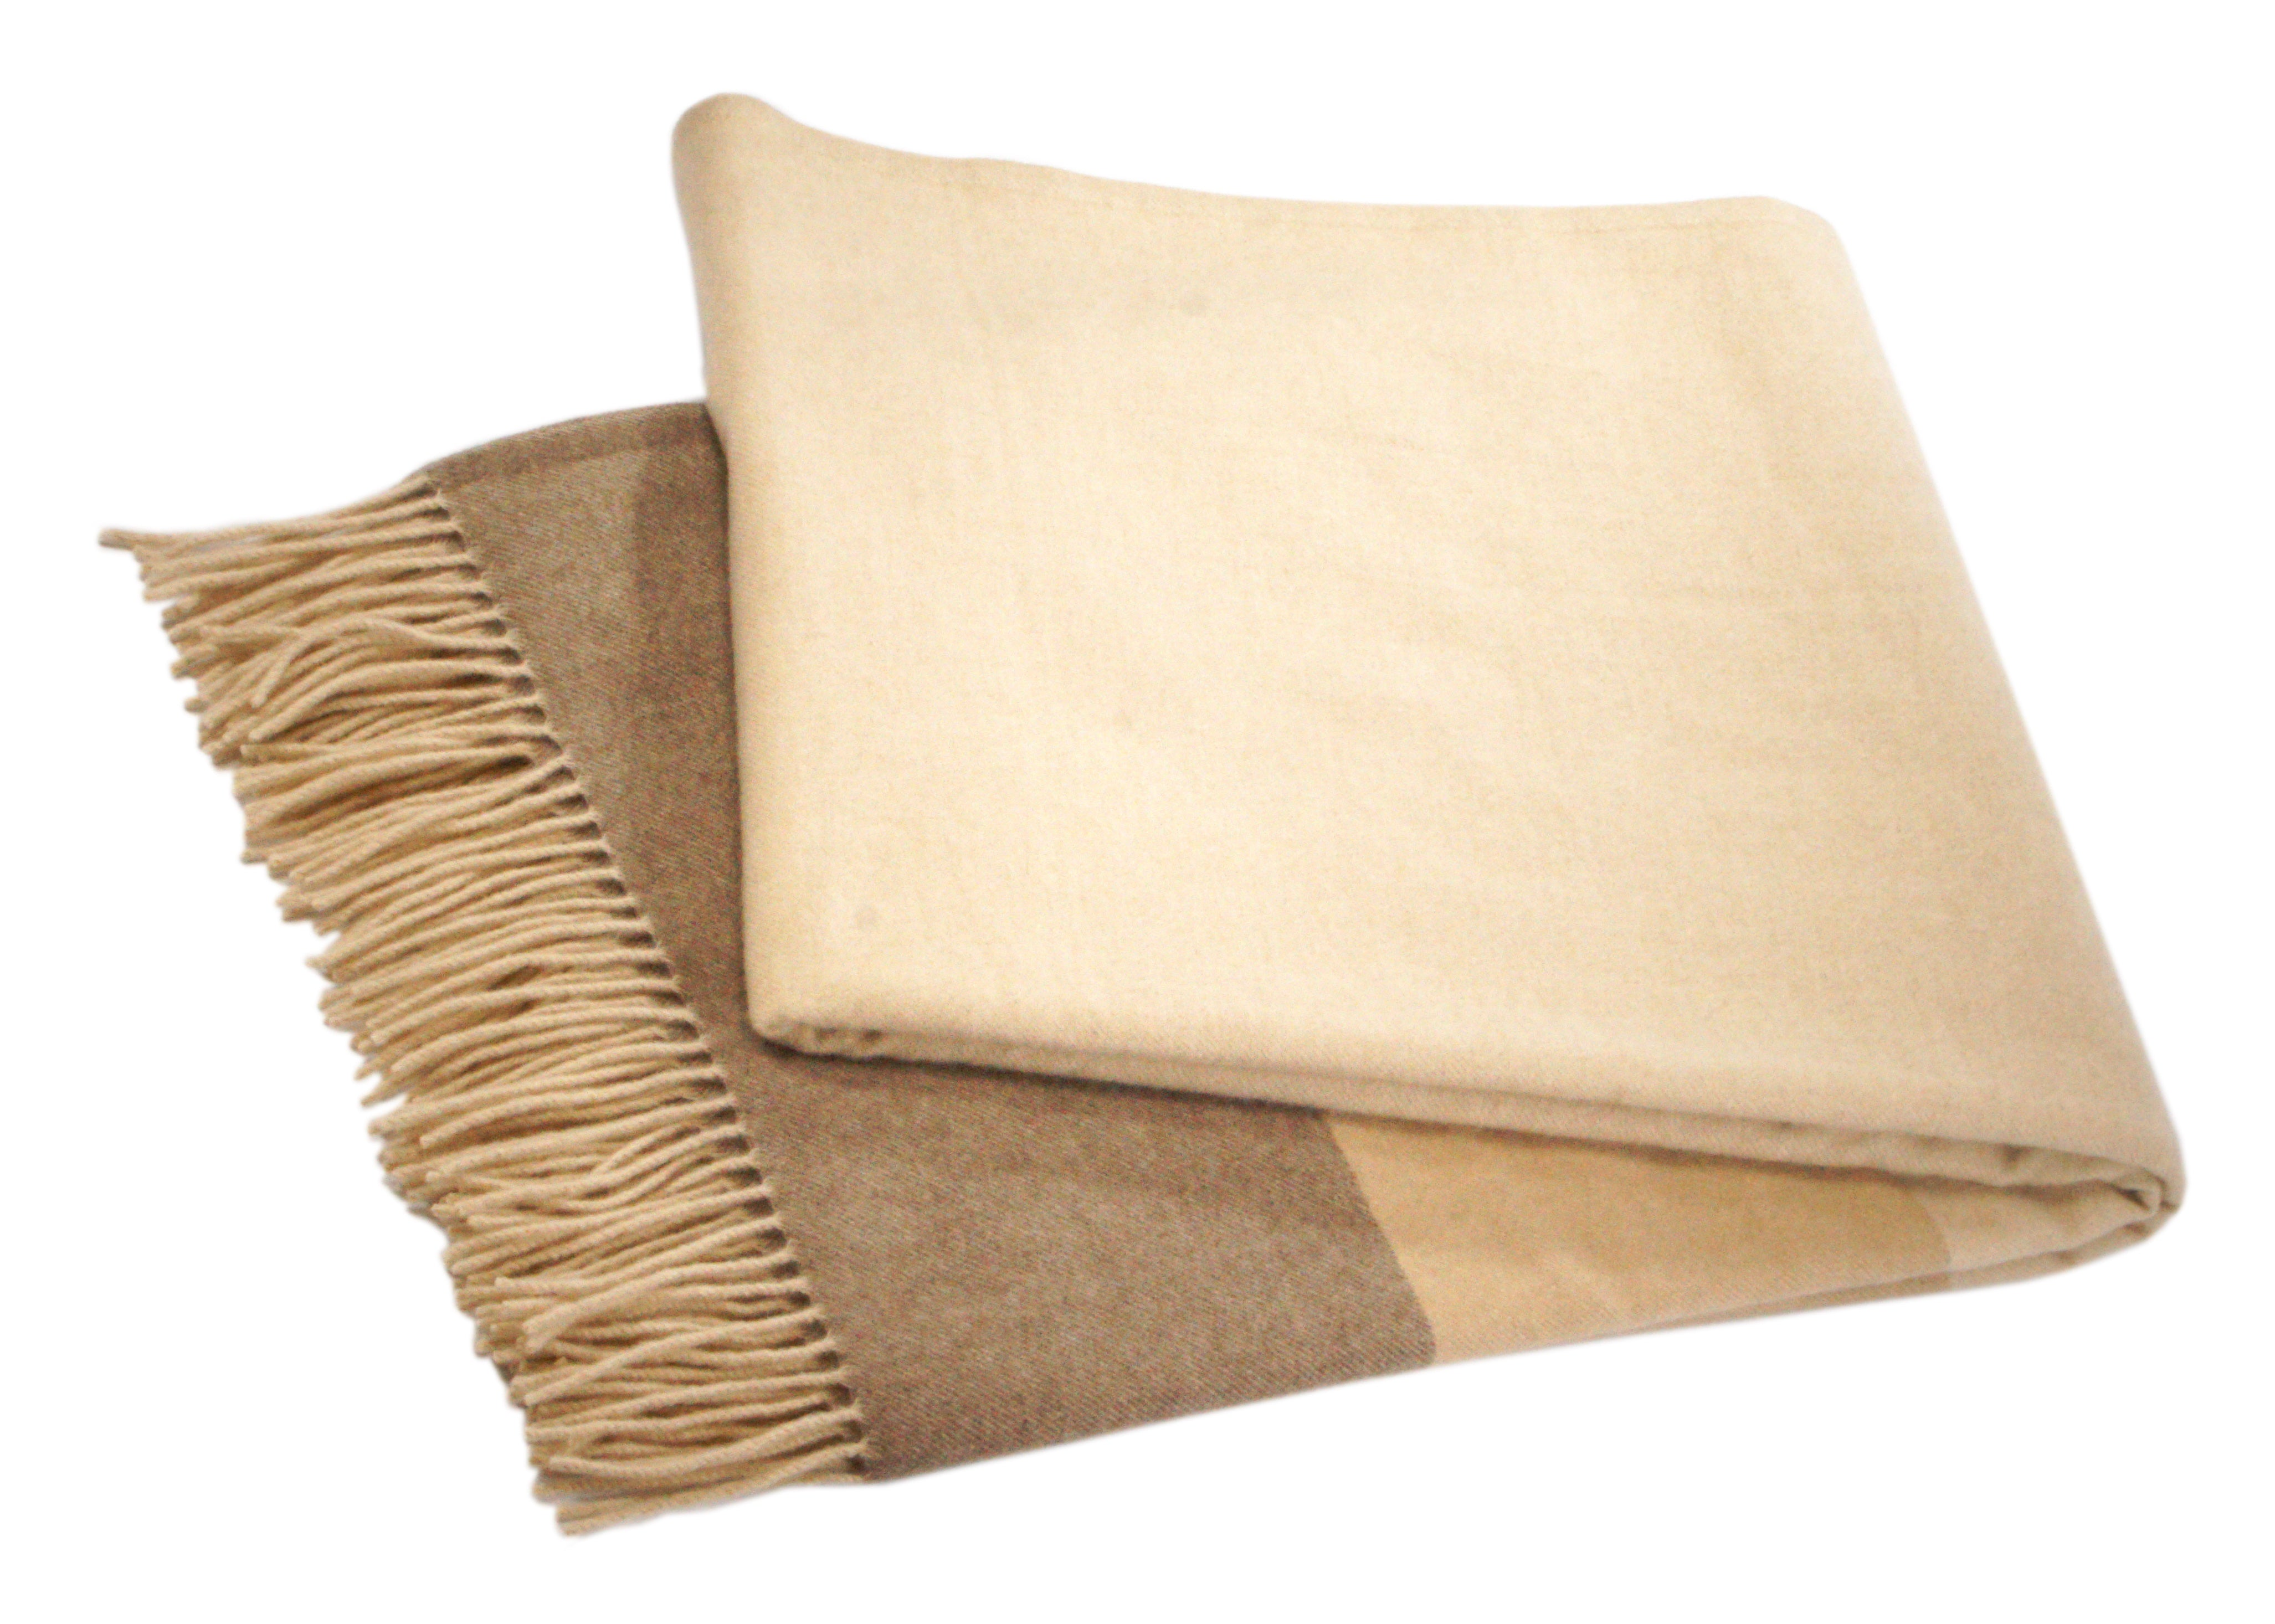 Gobi Cashmere Blanket 100% Cashmere Cozy Blanket Throw